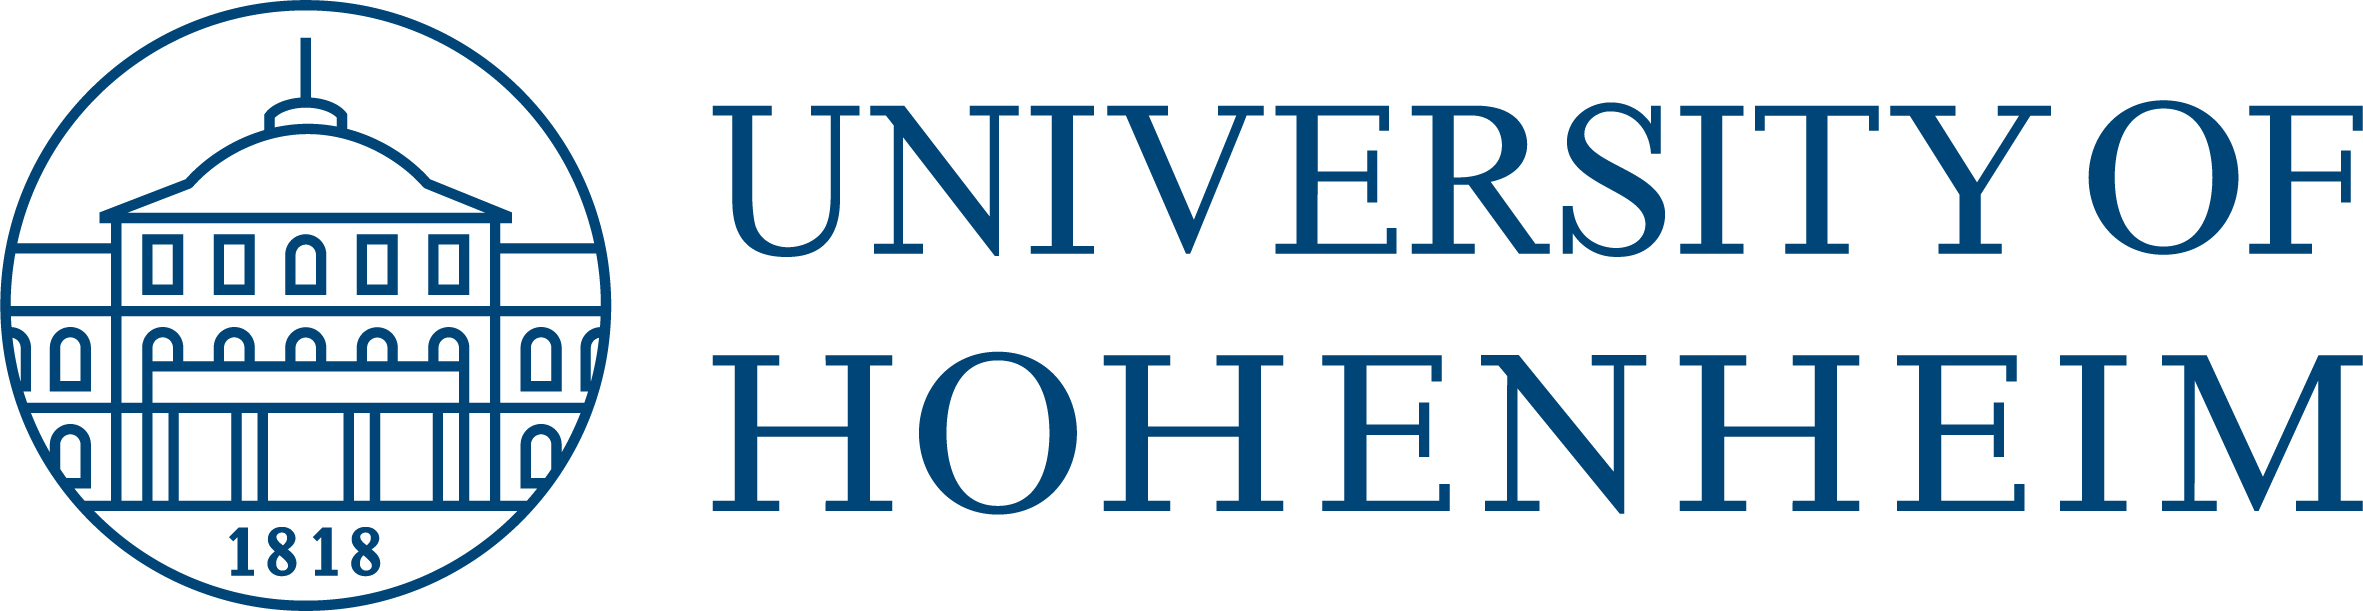 University of Hohenheim, Germany